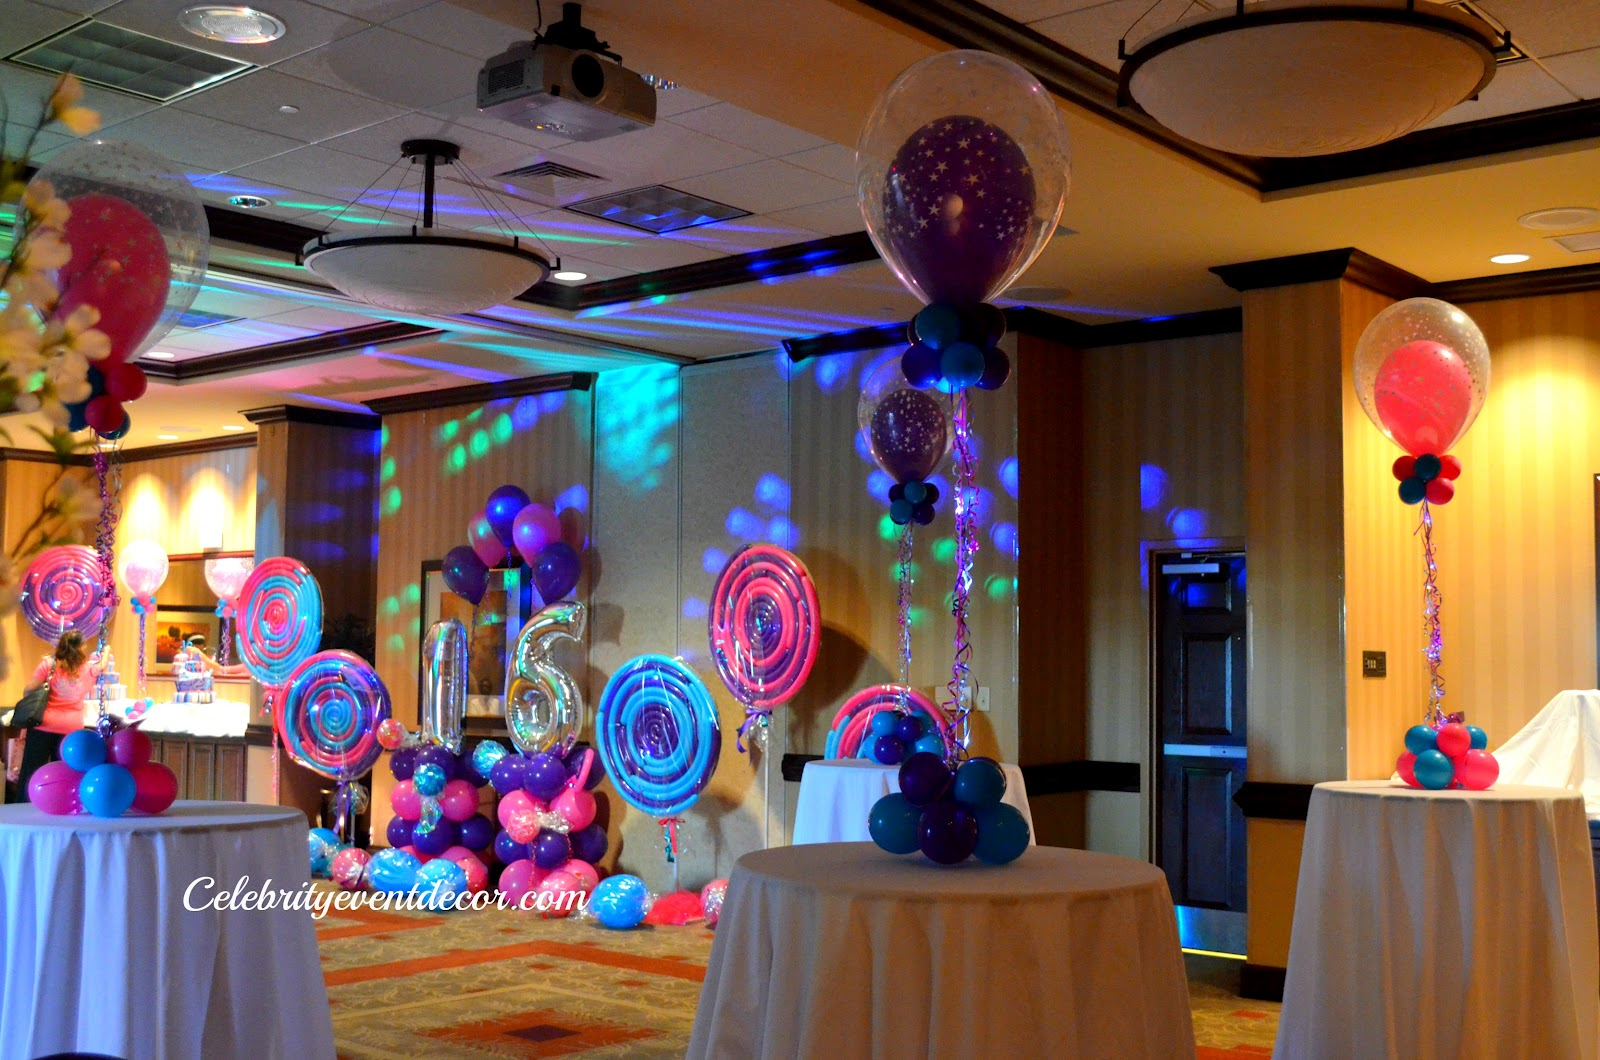 Celebrity event decor banquet hall llc august 2012 for Balloon decoration ideas for sweet 16